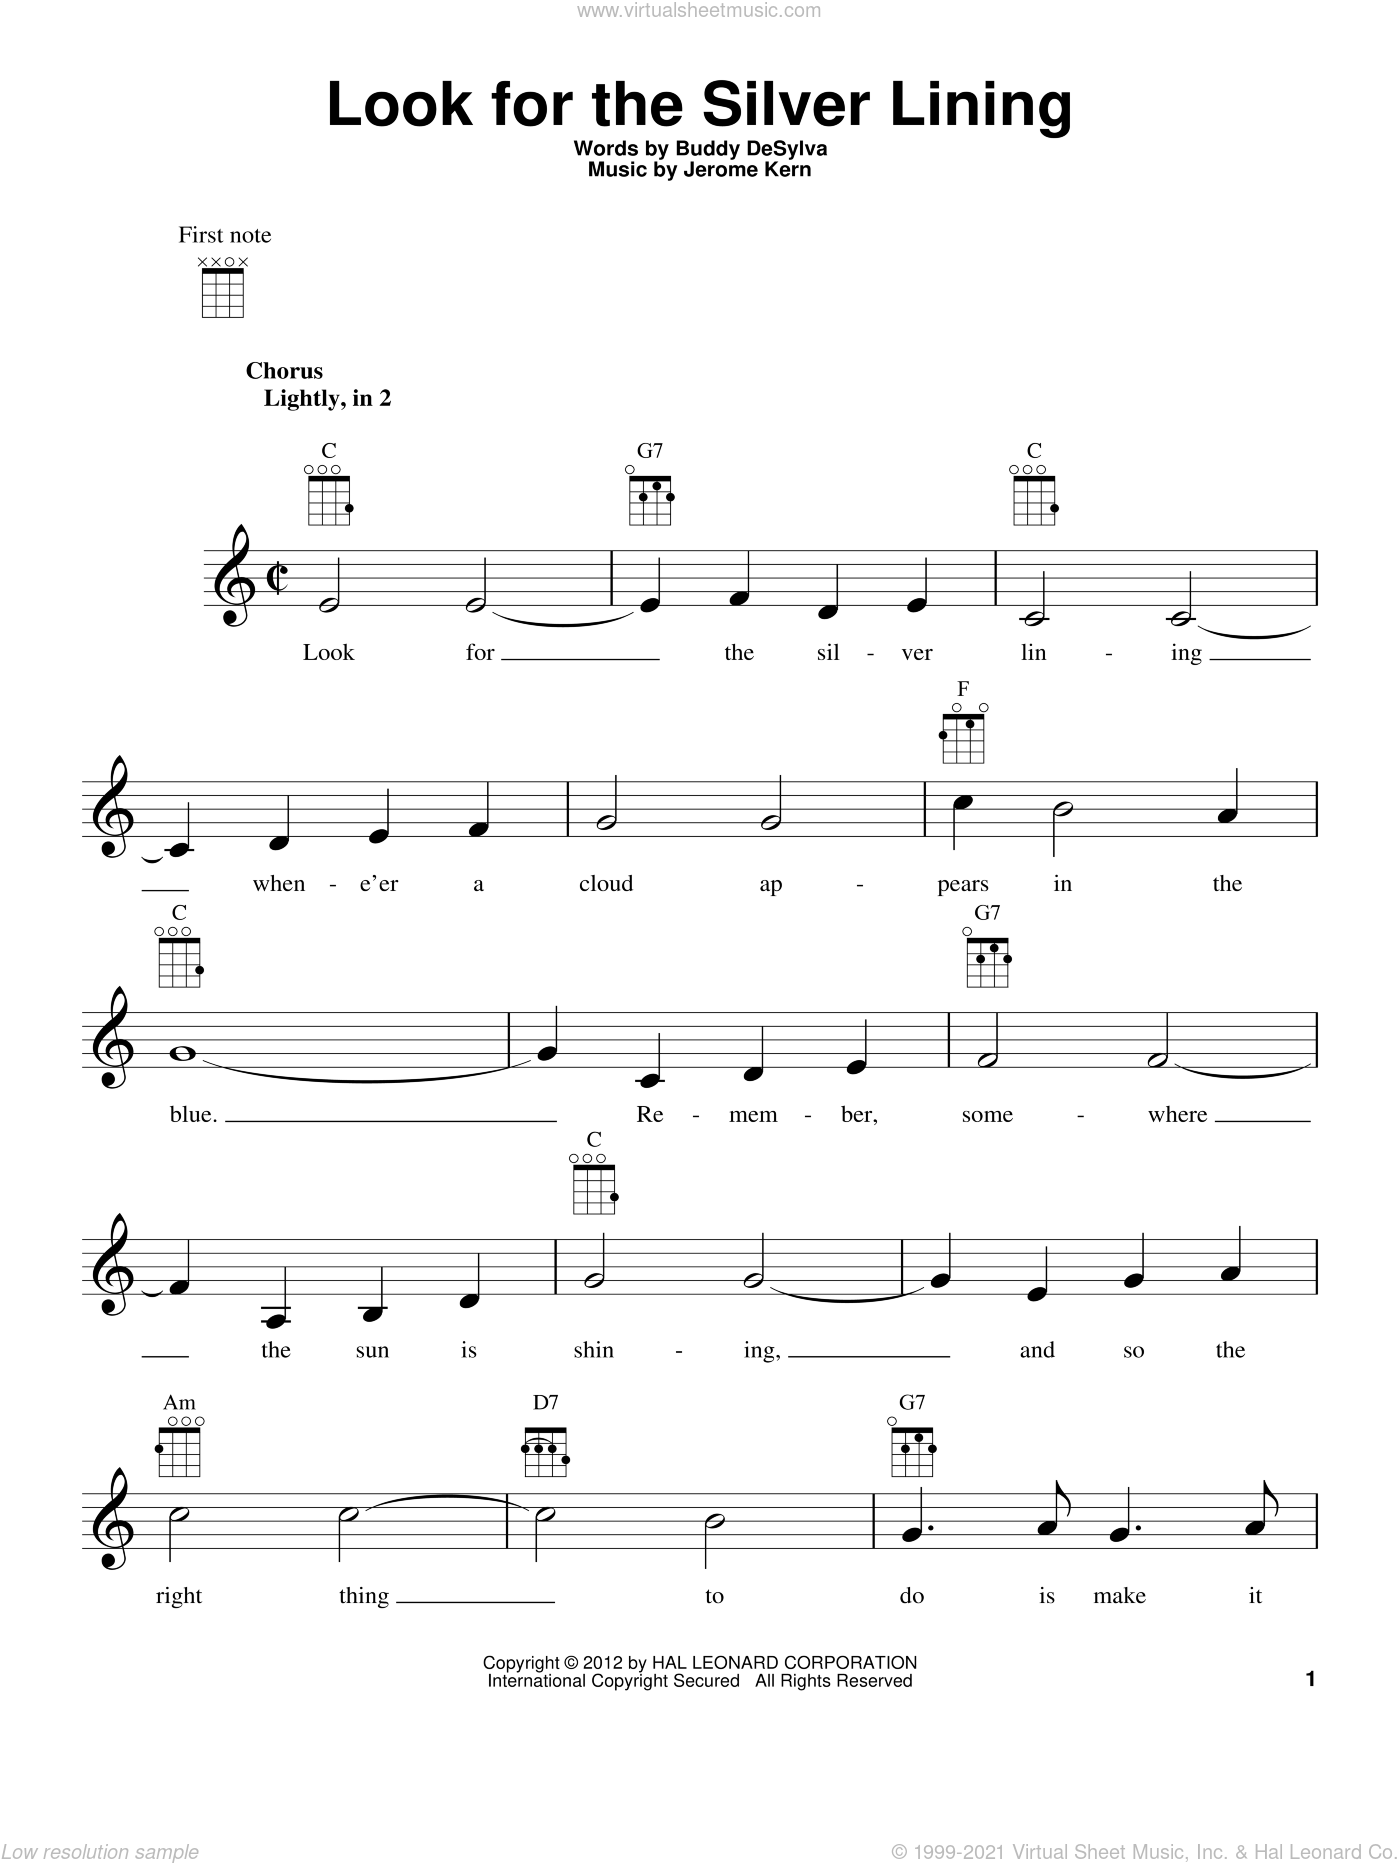 Look For The Silver Lining sheet music for ukulele by Buddy DeSylva